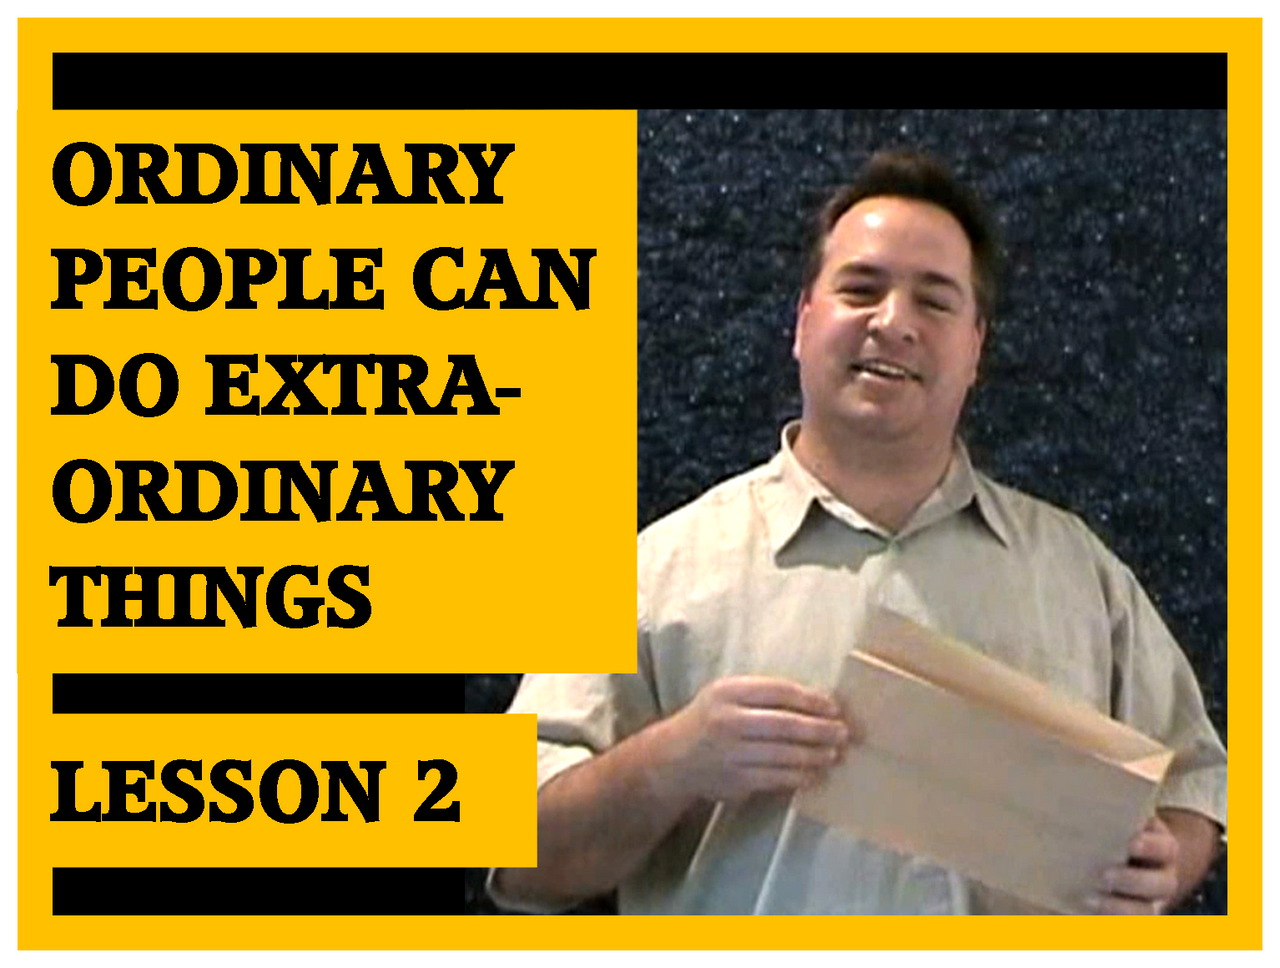 Gospel Magic Lesson Trick 1 Ordinary People Doing Extraordinary things